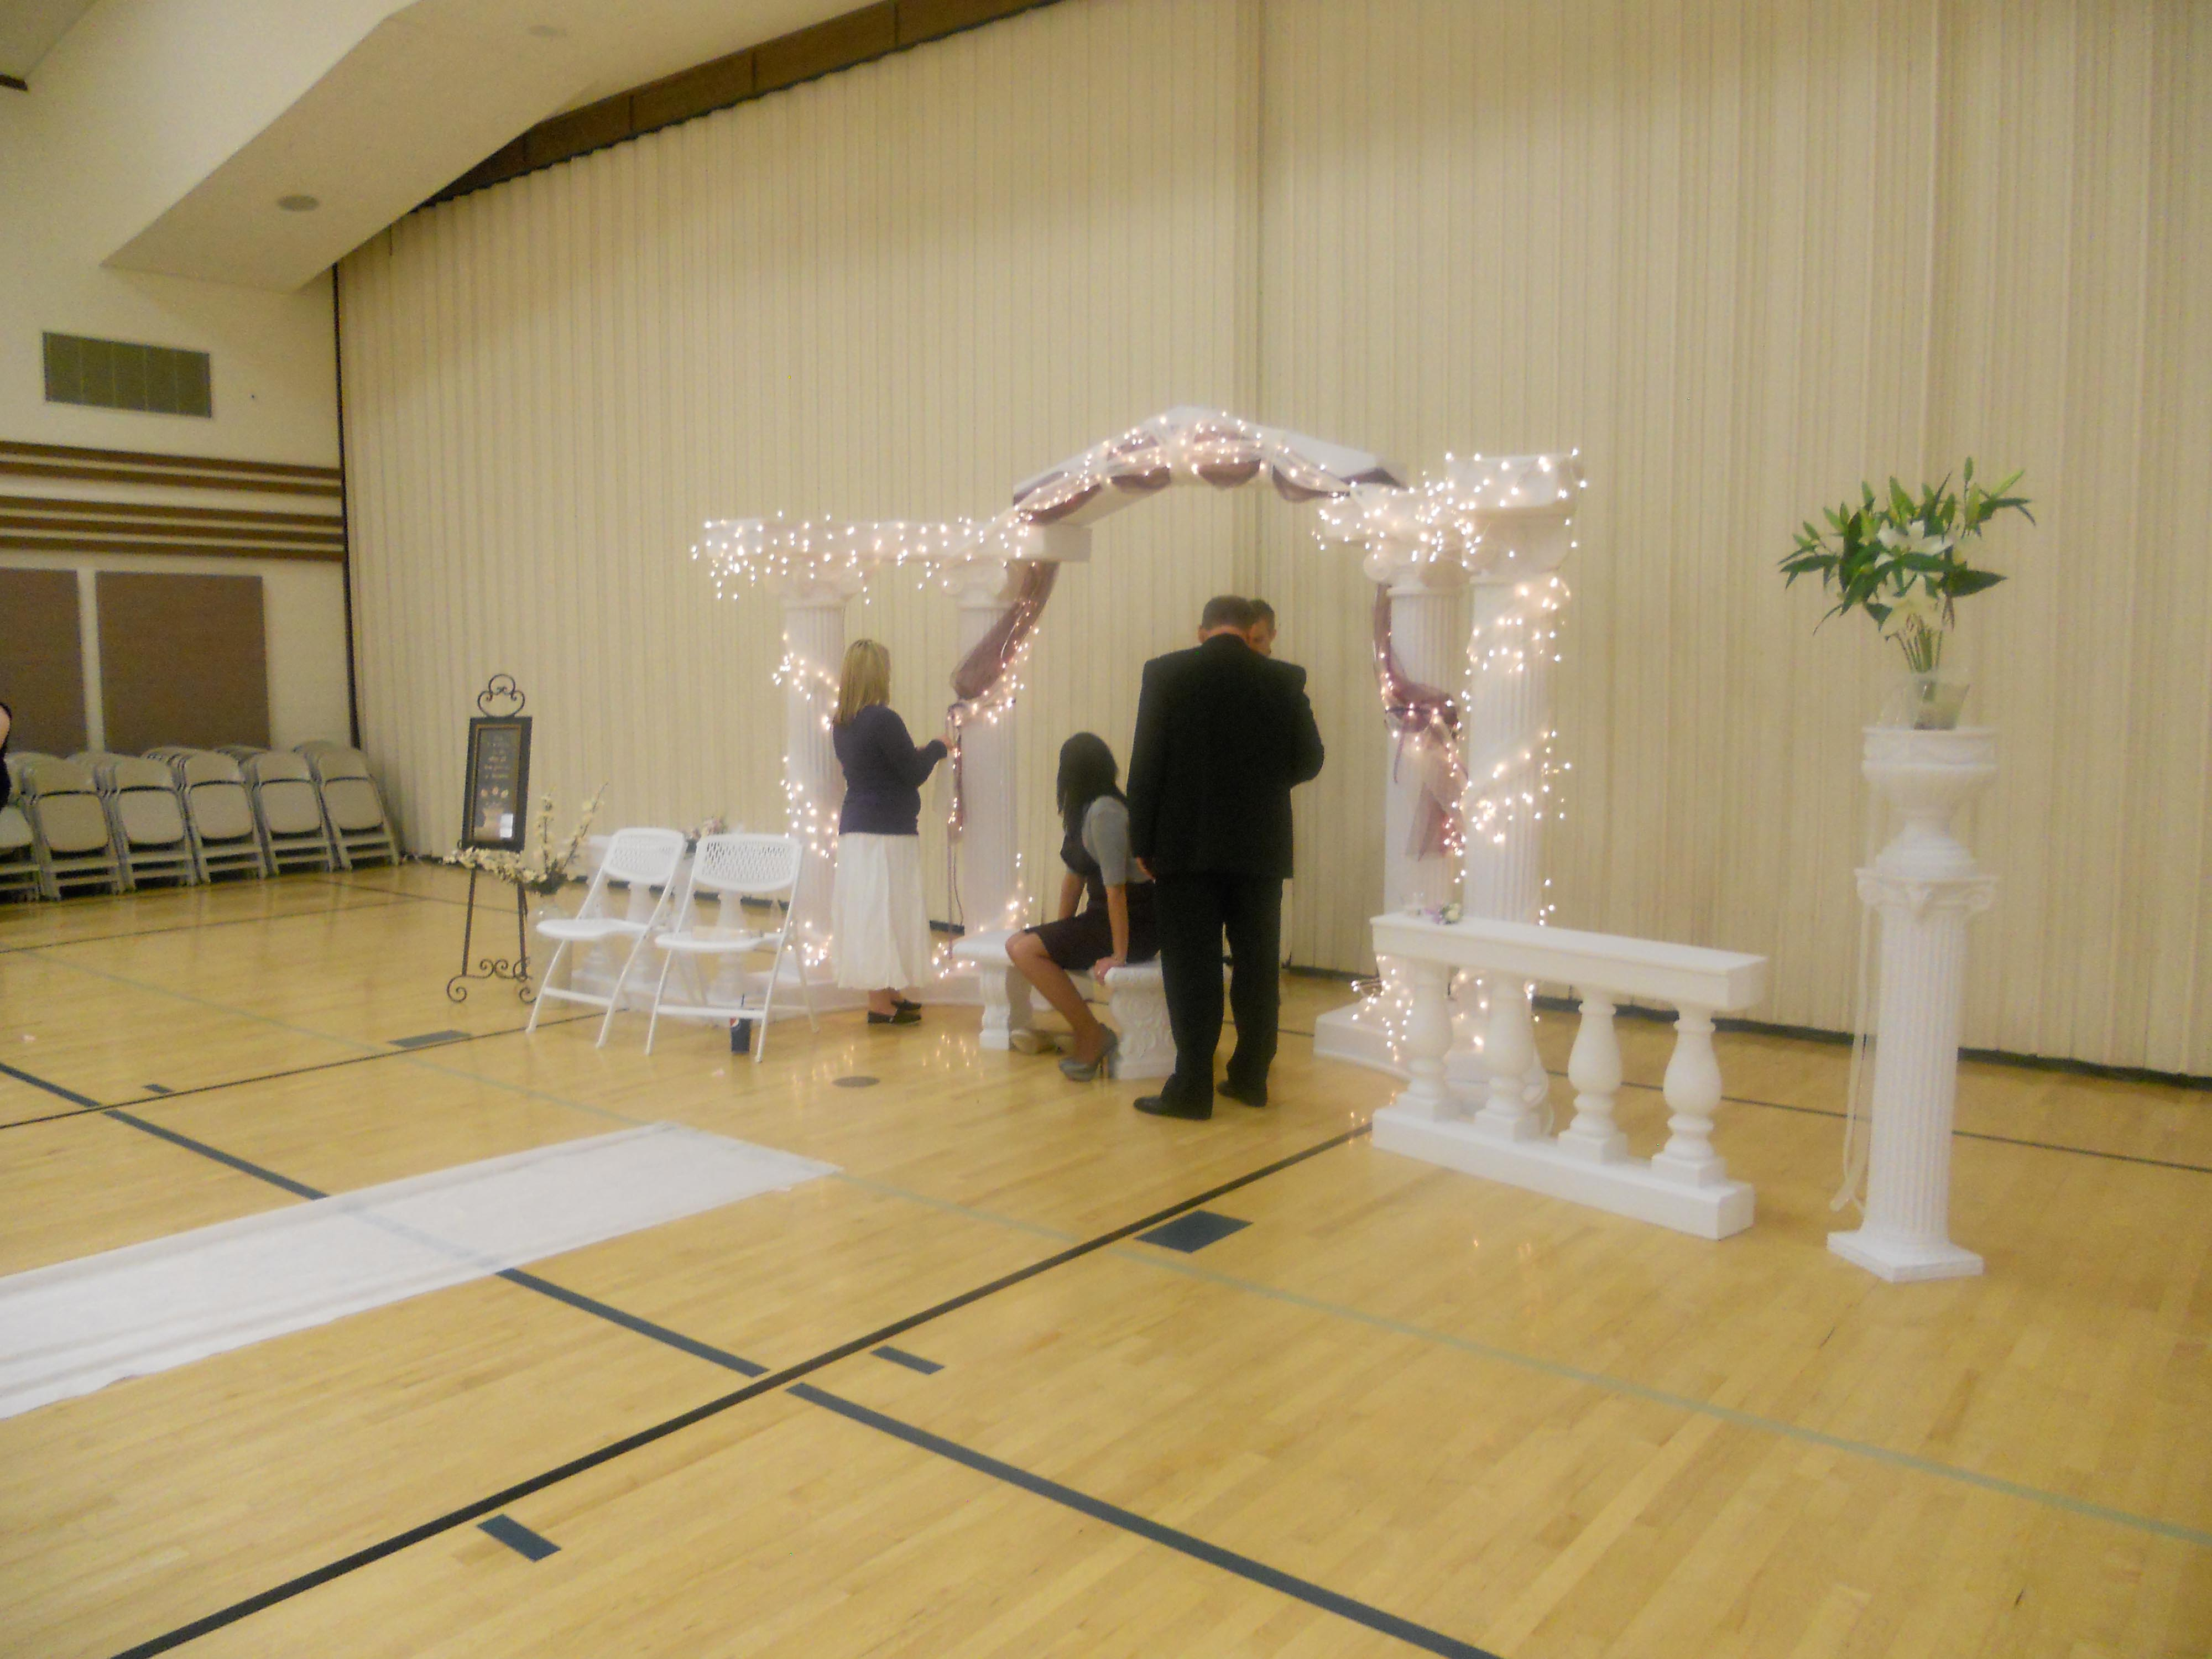 chair cover rentals utah desk price we rent tables chairs and linens in springville